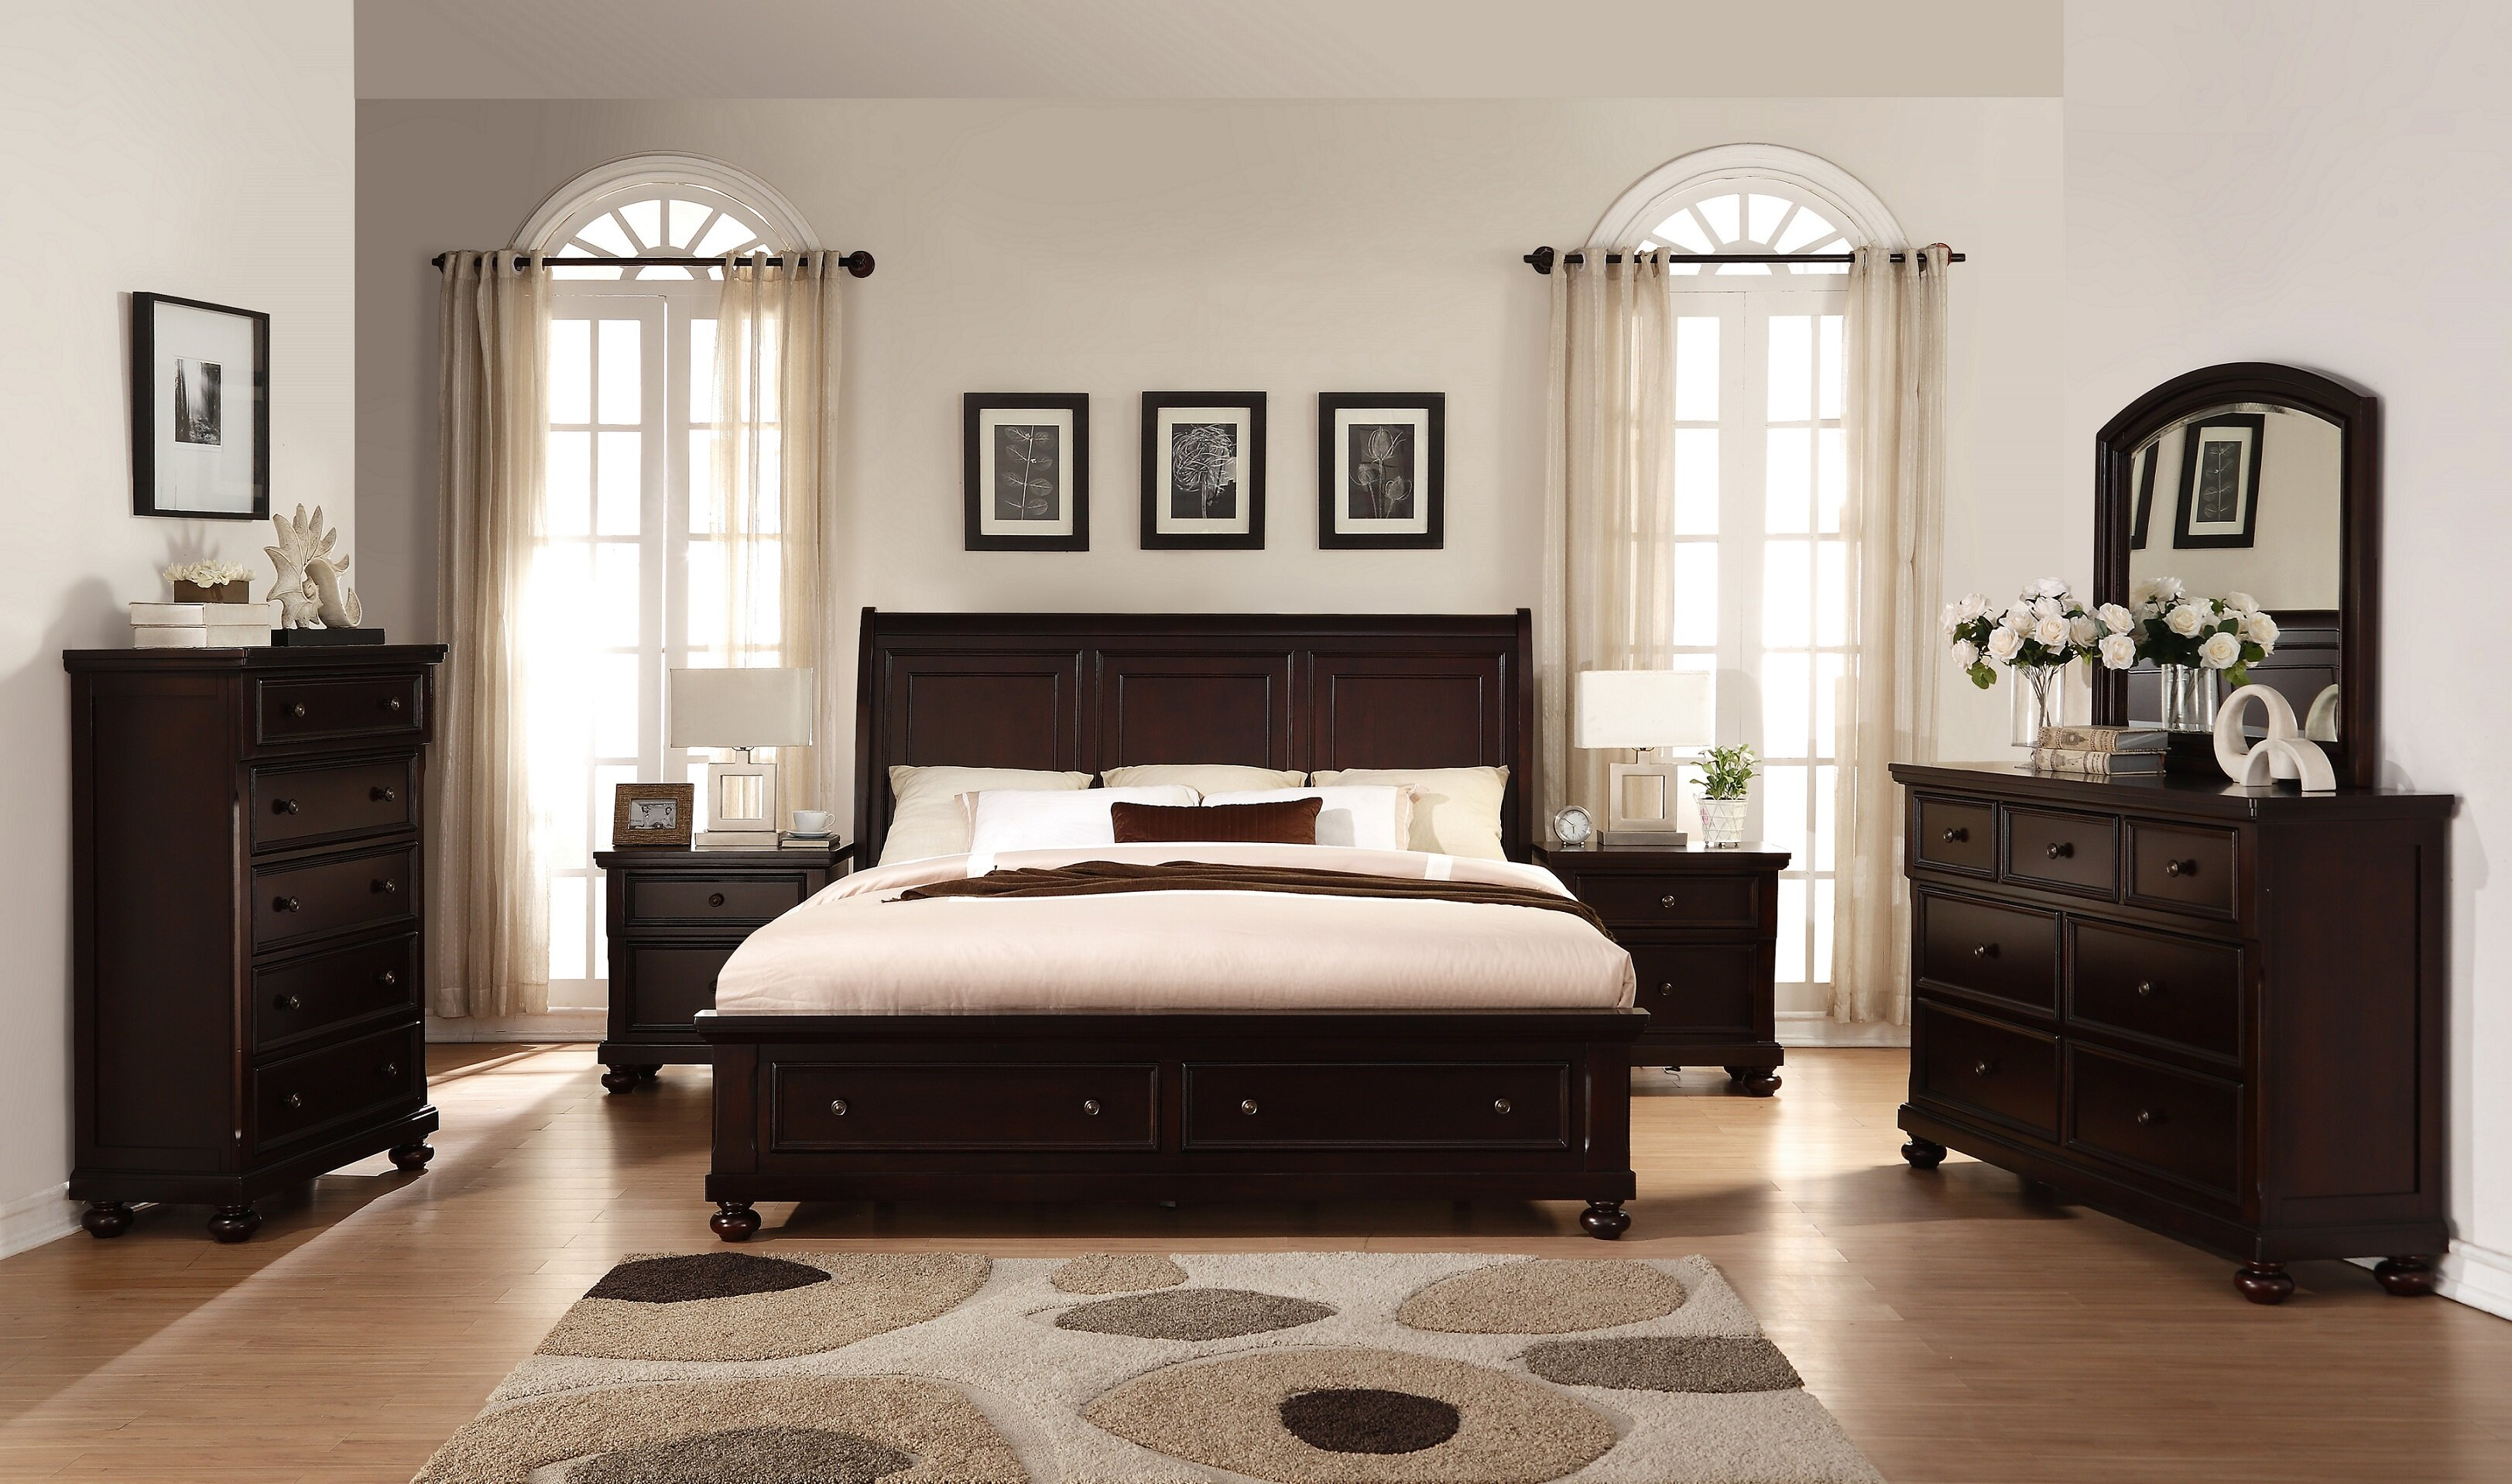 Roundhill Furniture Brishland Queen Platform 6 Piece Bedroom Set ...